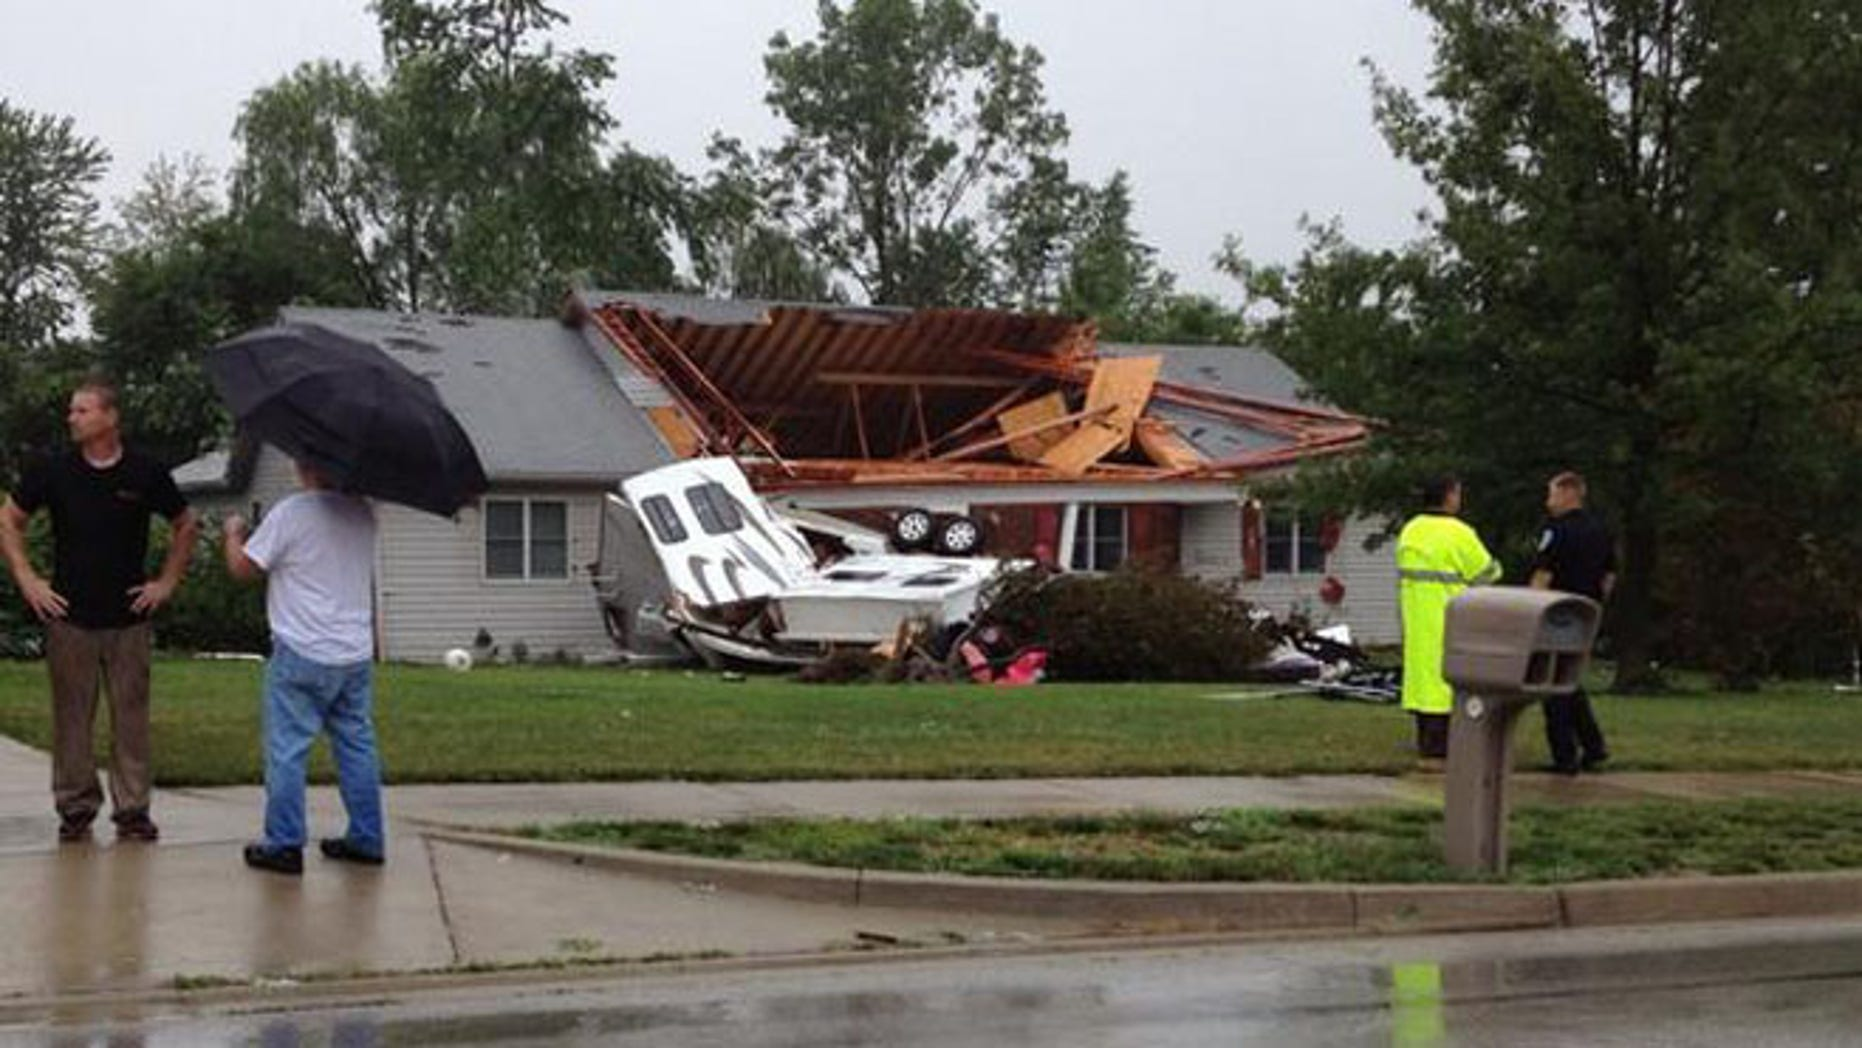 June 24, 2014: Residents stand outside a home that was badly damaged by a tornado in Plainfield, Indiana.